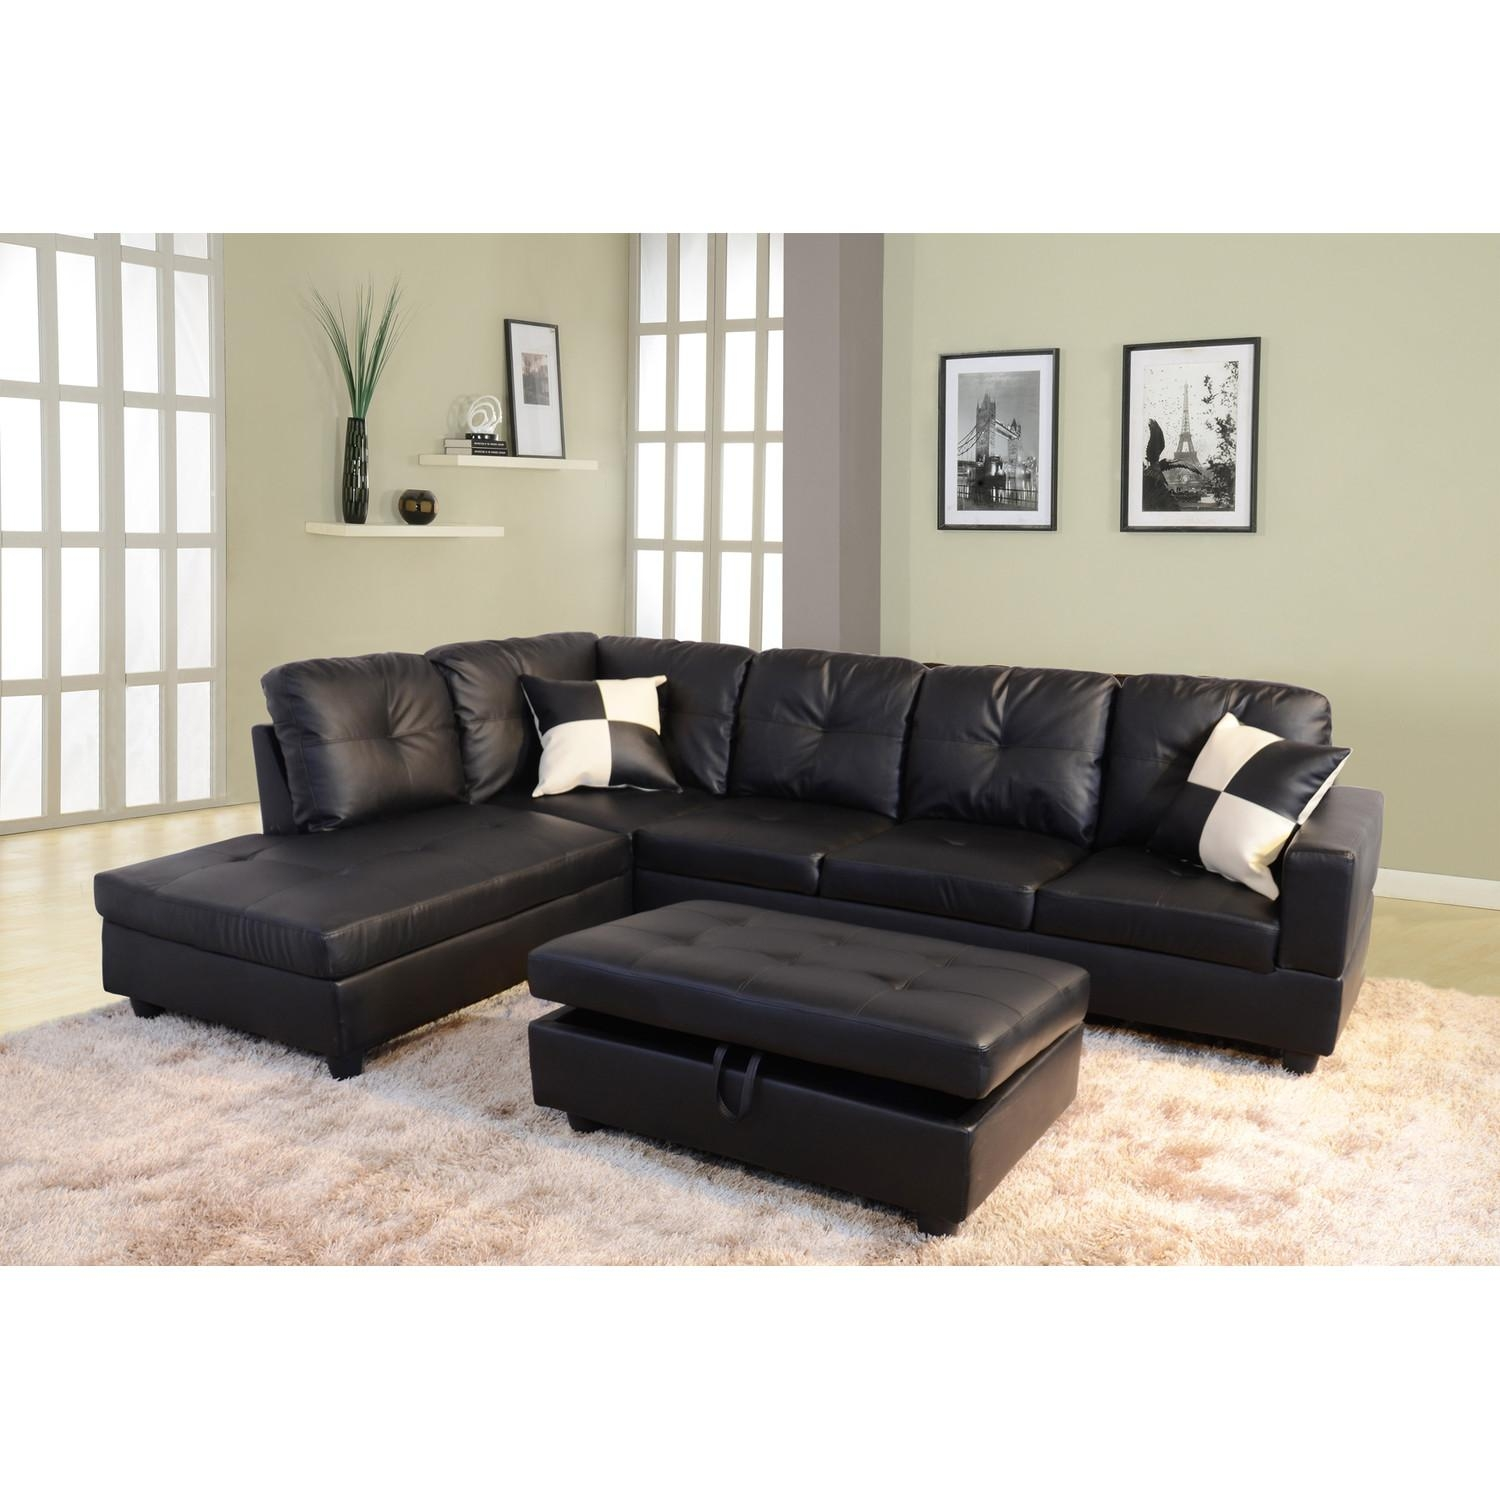 Furniture: Classic And Traditional Style Velvet Sectional Sofa For Within Tufted Sectional Sofa Chaise (Image 4 of 20)